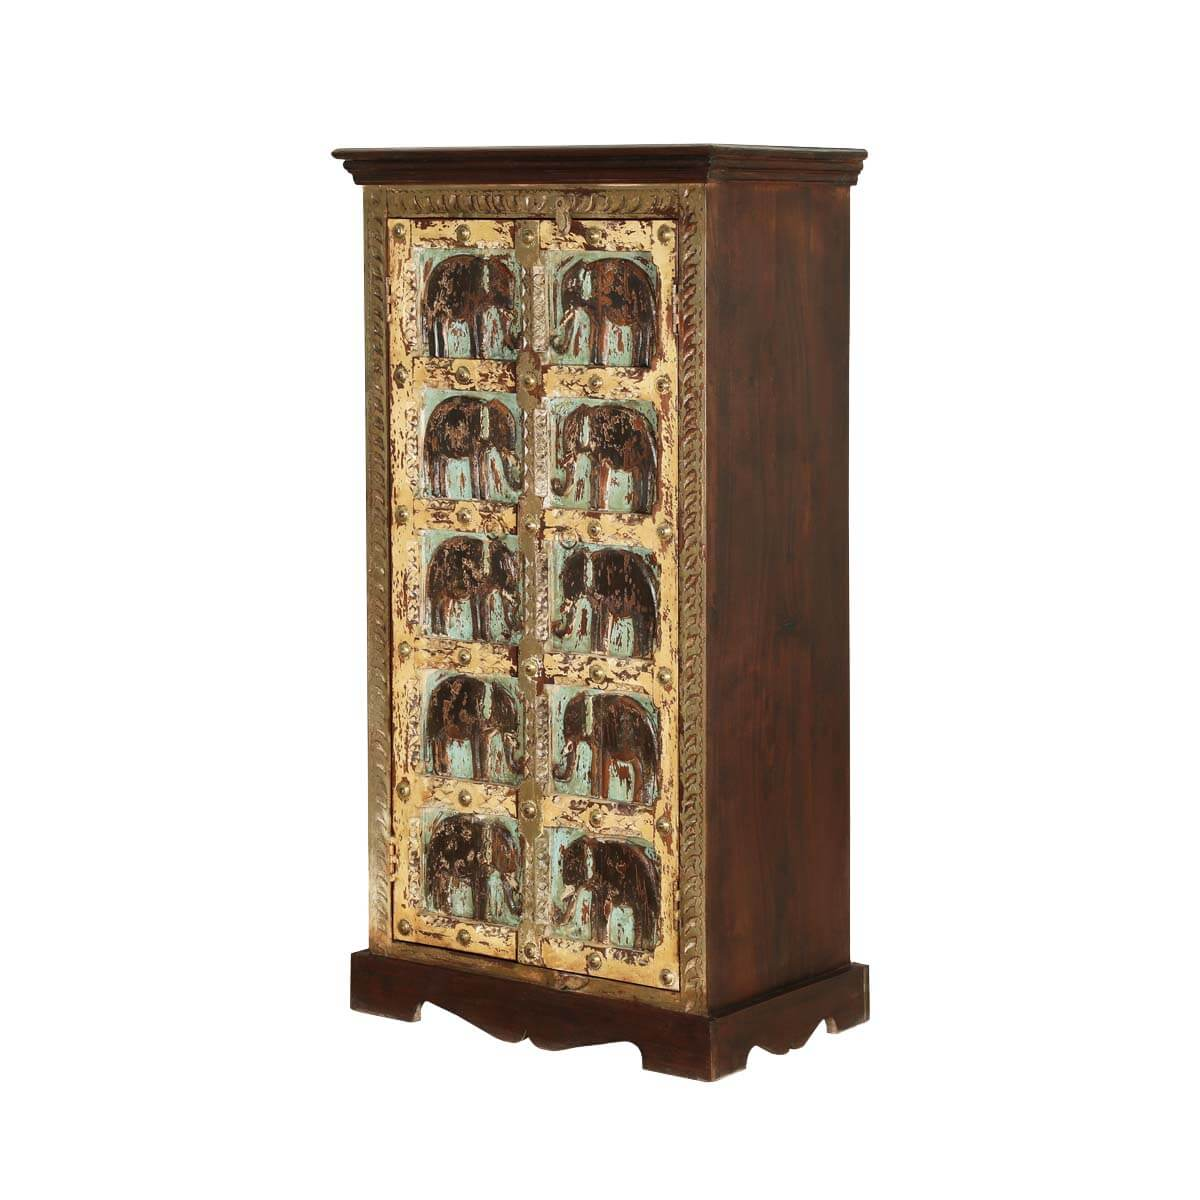 Rustic Gothic Mango Wood 50u201d Double Door Armoire Cabinet